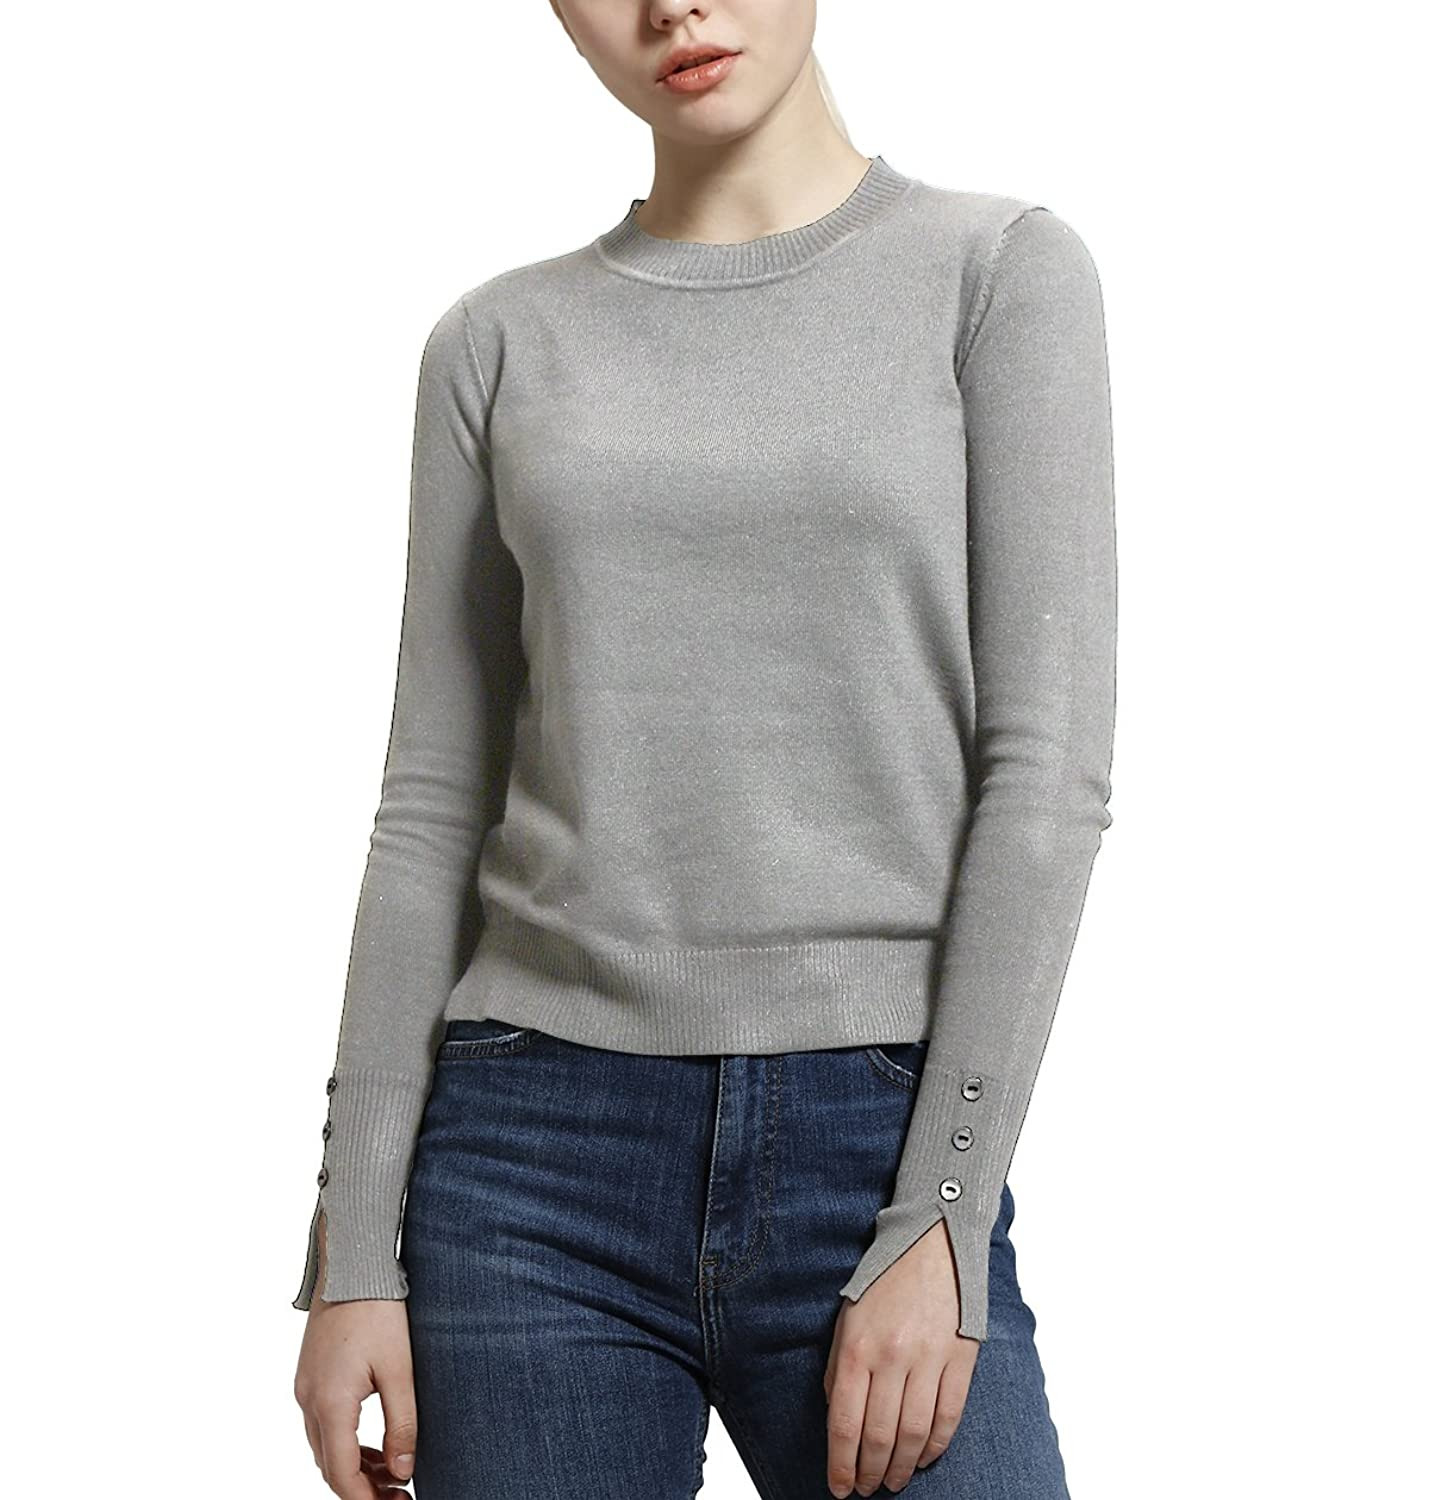 PRETTIGO Long Sleeve Crew Neck Knitted Fashion Comfortable Pullover Sweater